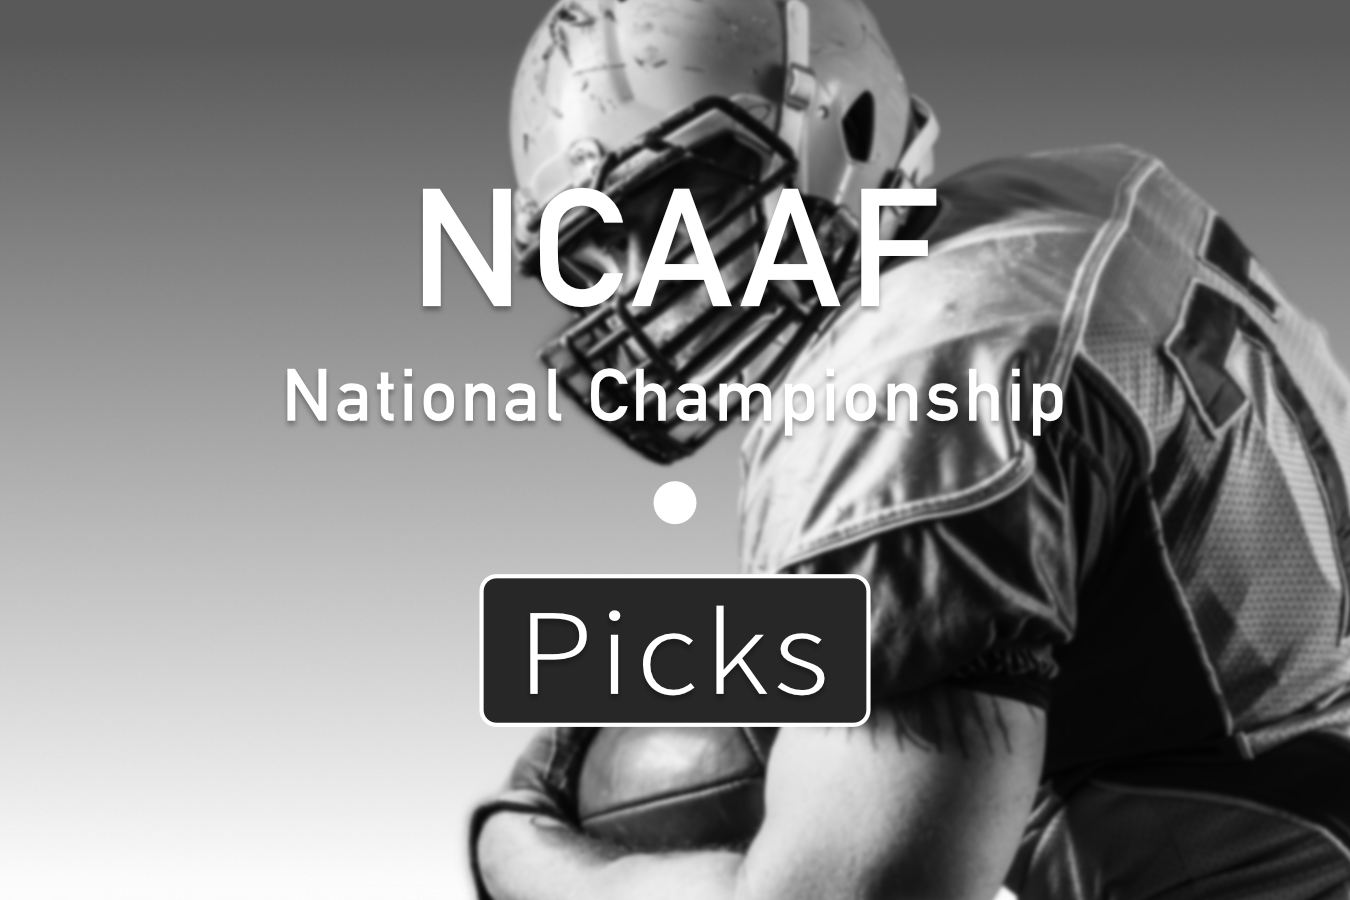 NCAAF National Championship 2021 Picks